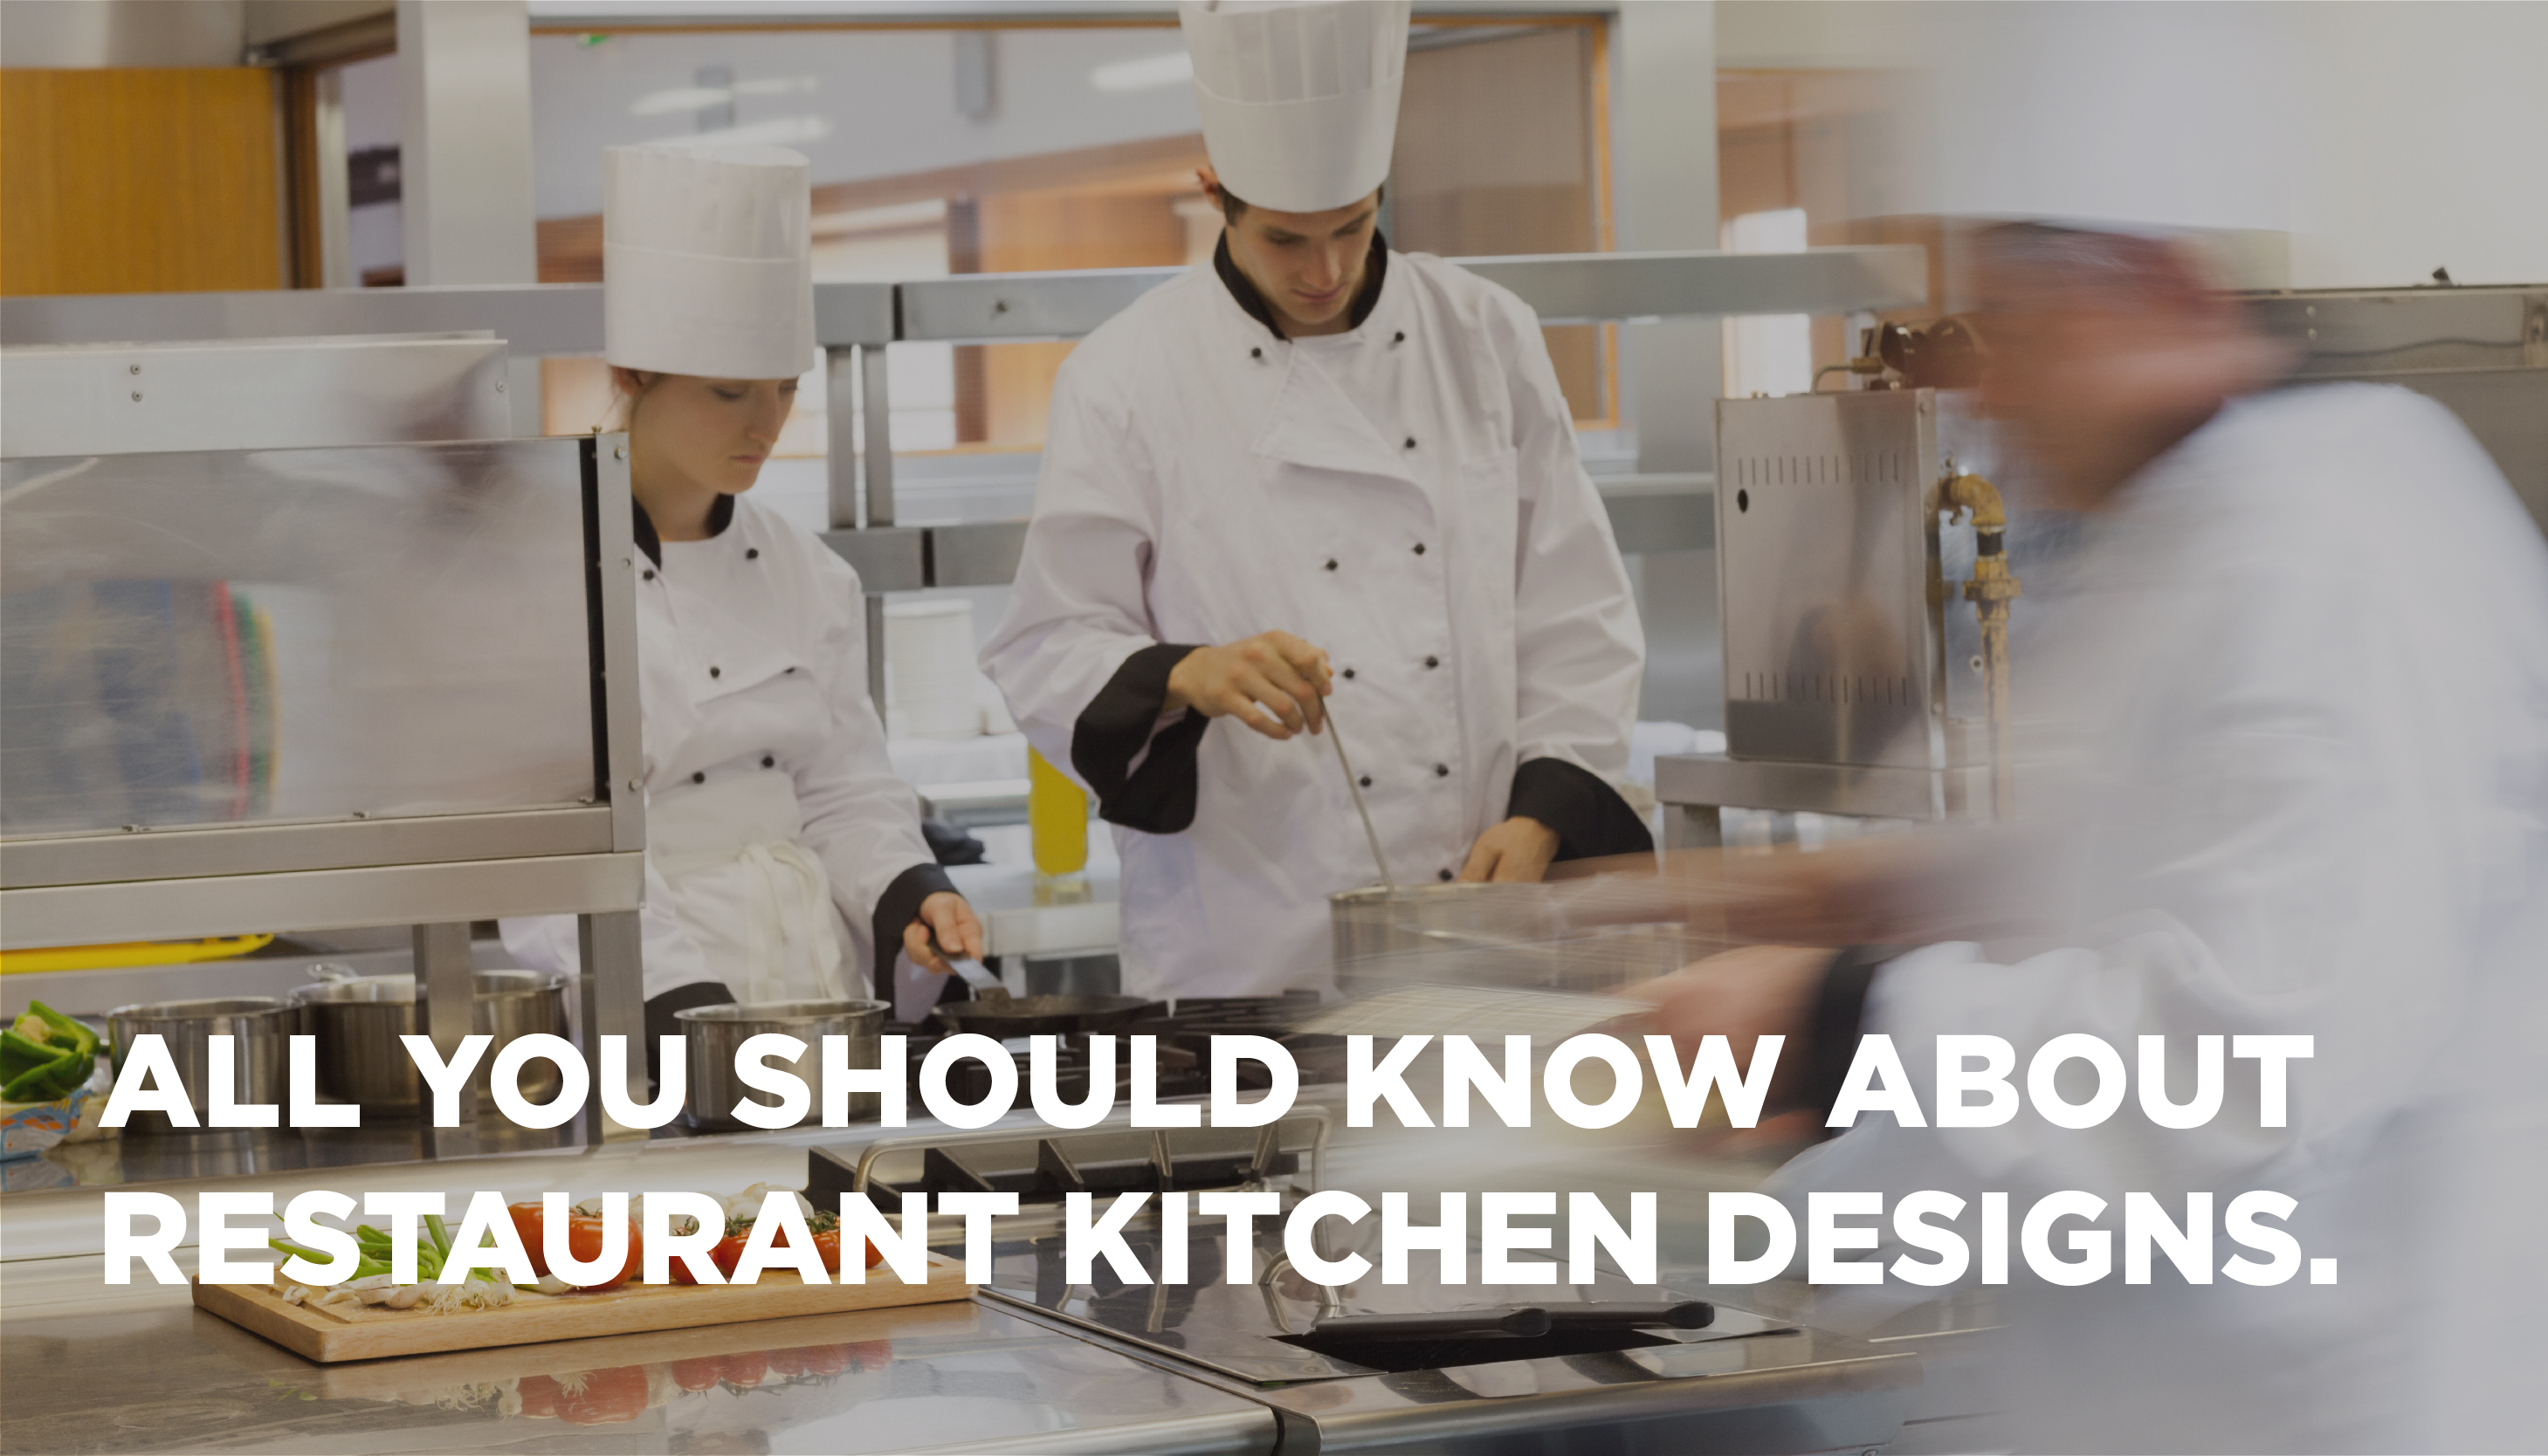 All you should know about restaurant kitchen design